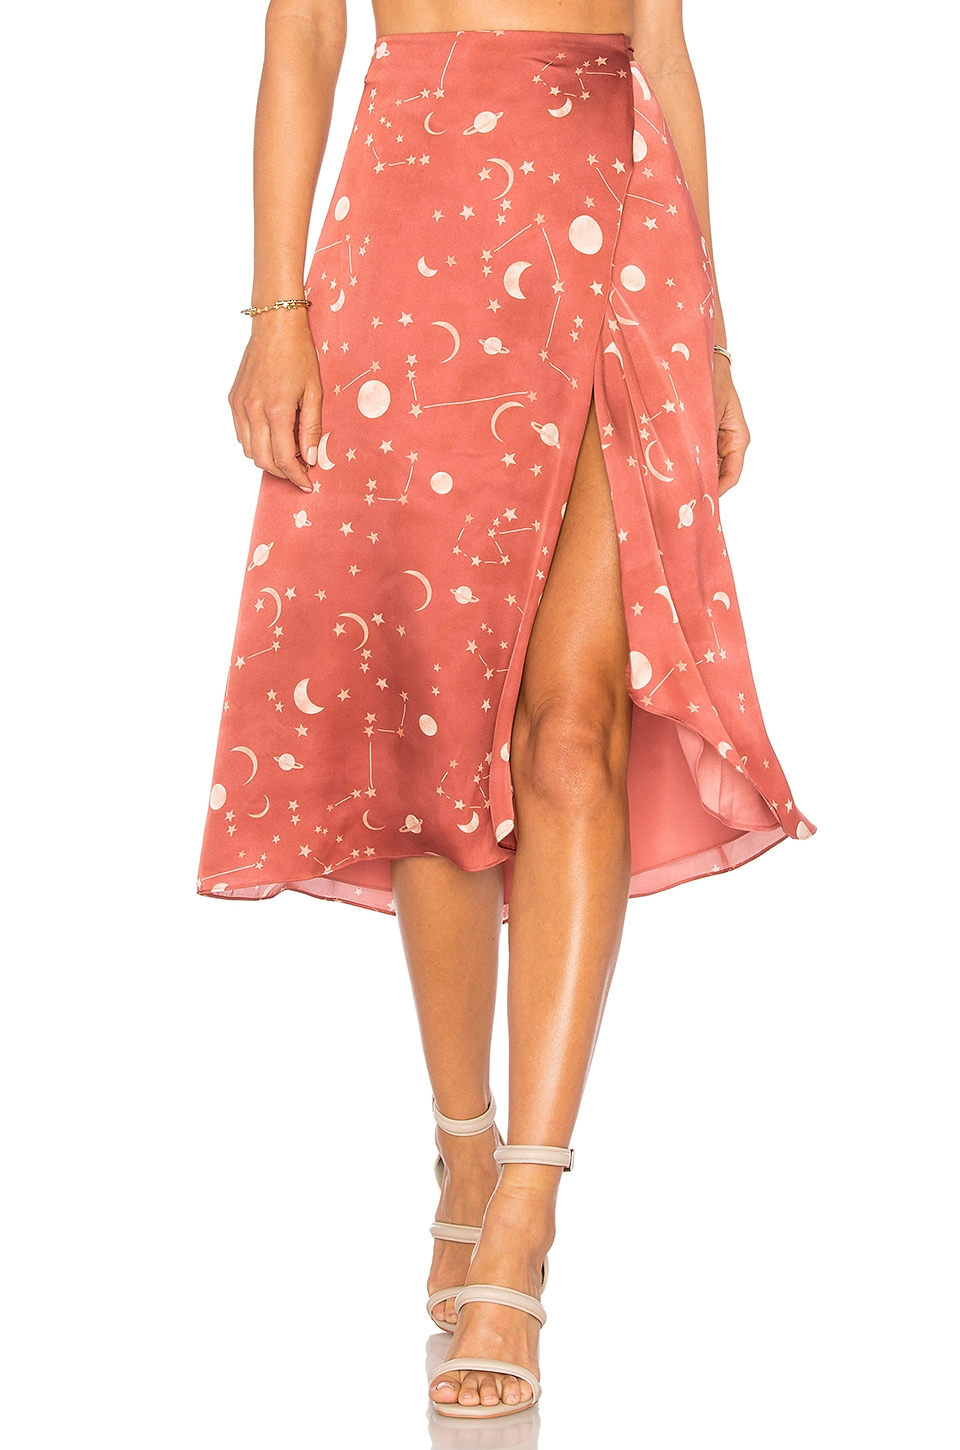 Lovers + Friends x REVOLVE Margarita Midi Skirt in Constellation Print